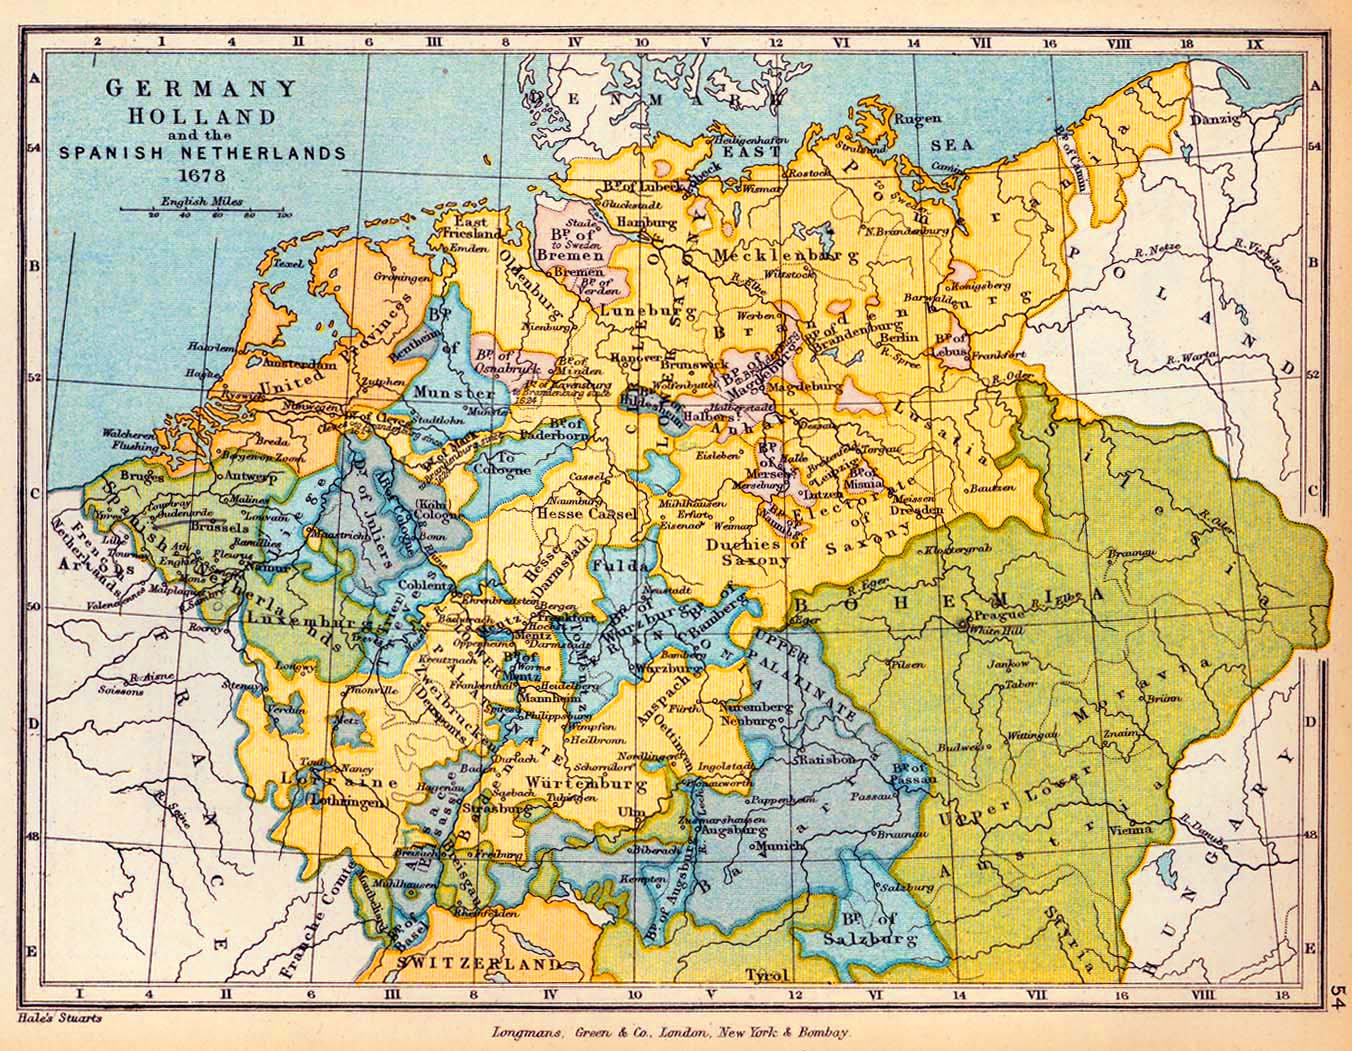 Map of central europe 1678 map of germany holland and the spanish netherlands 1678 gumiabroncs Gallery